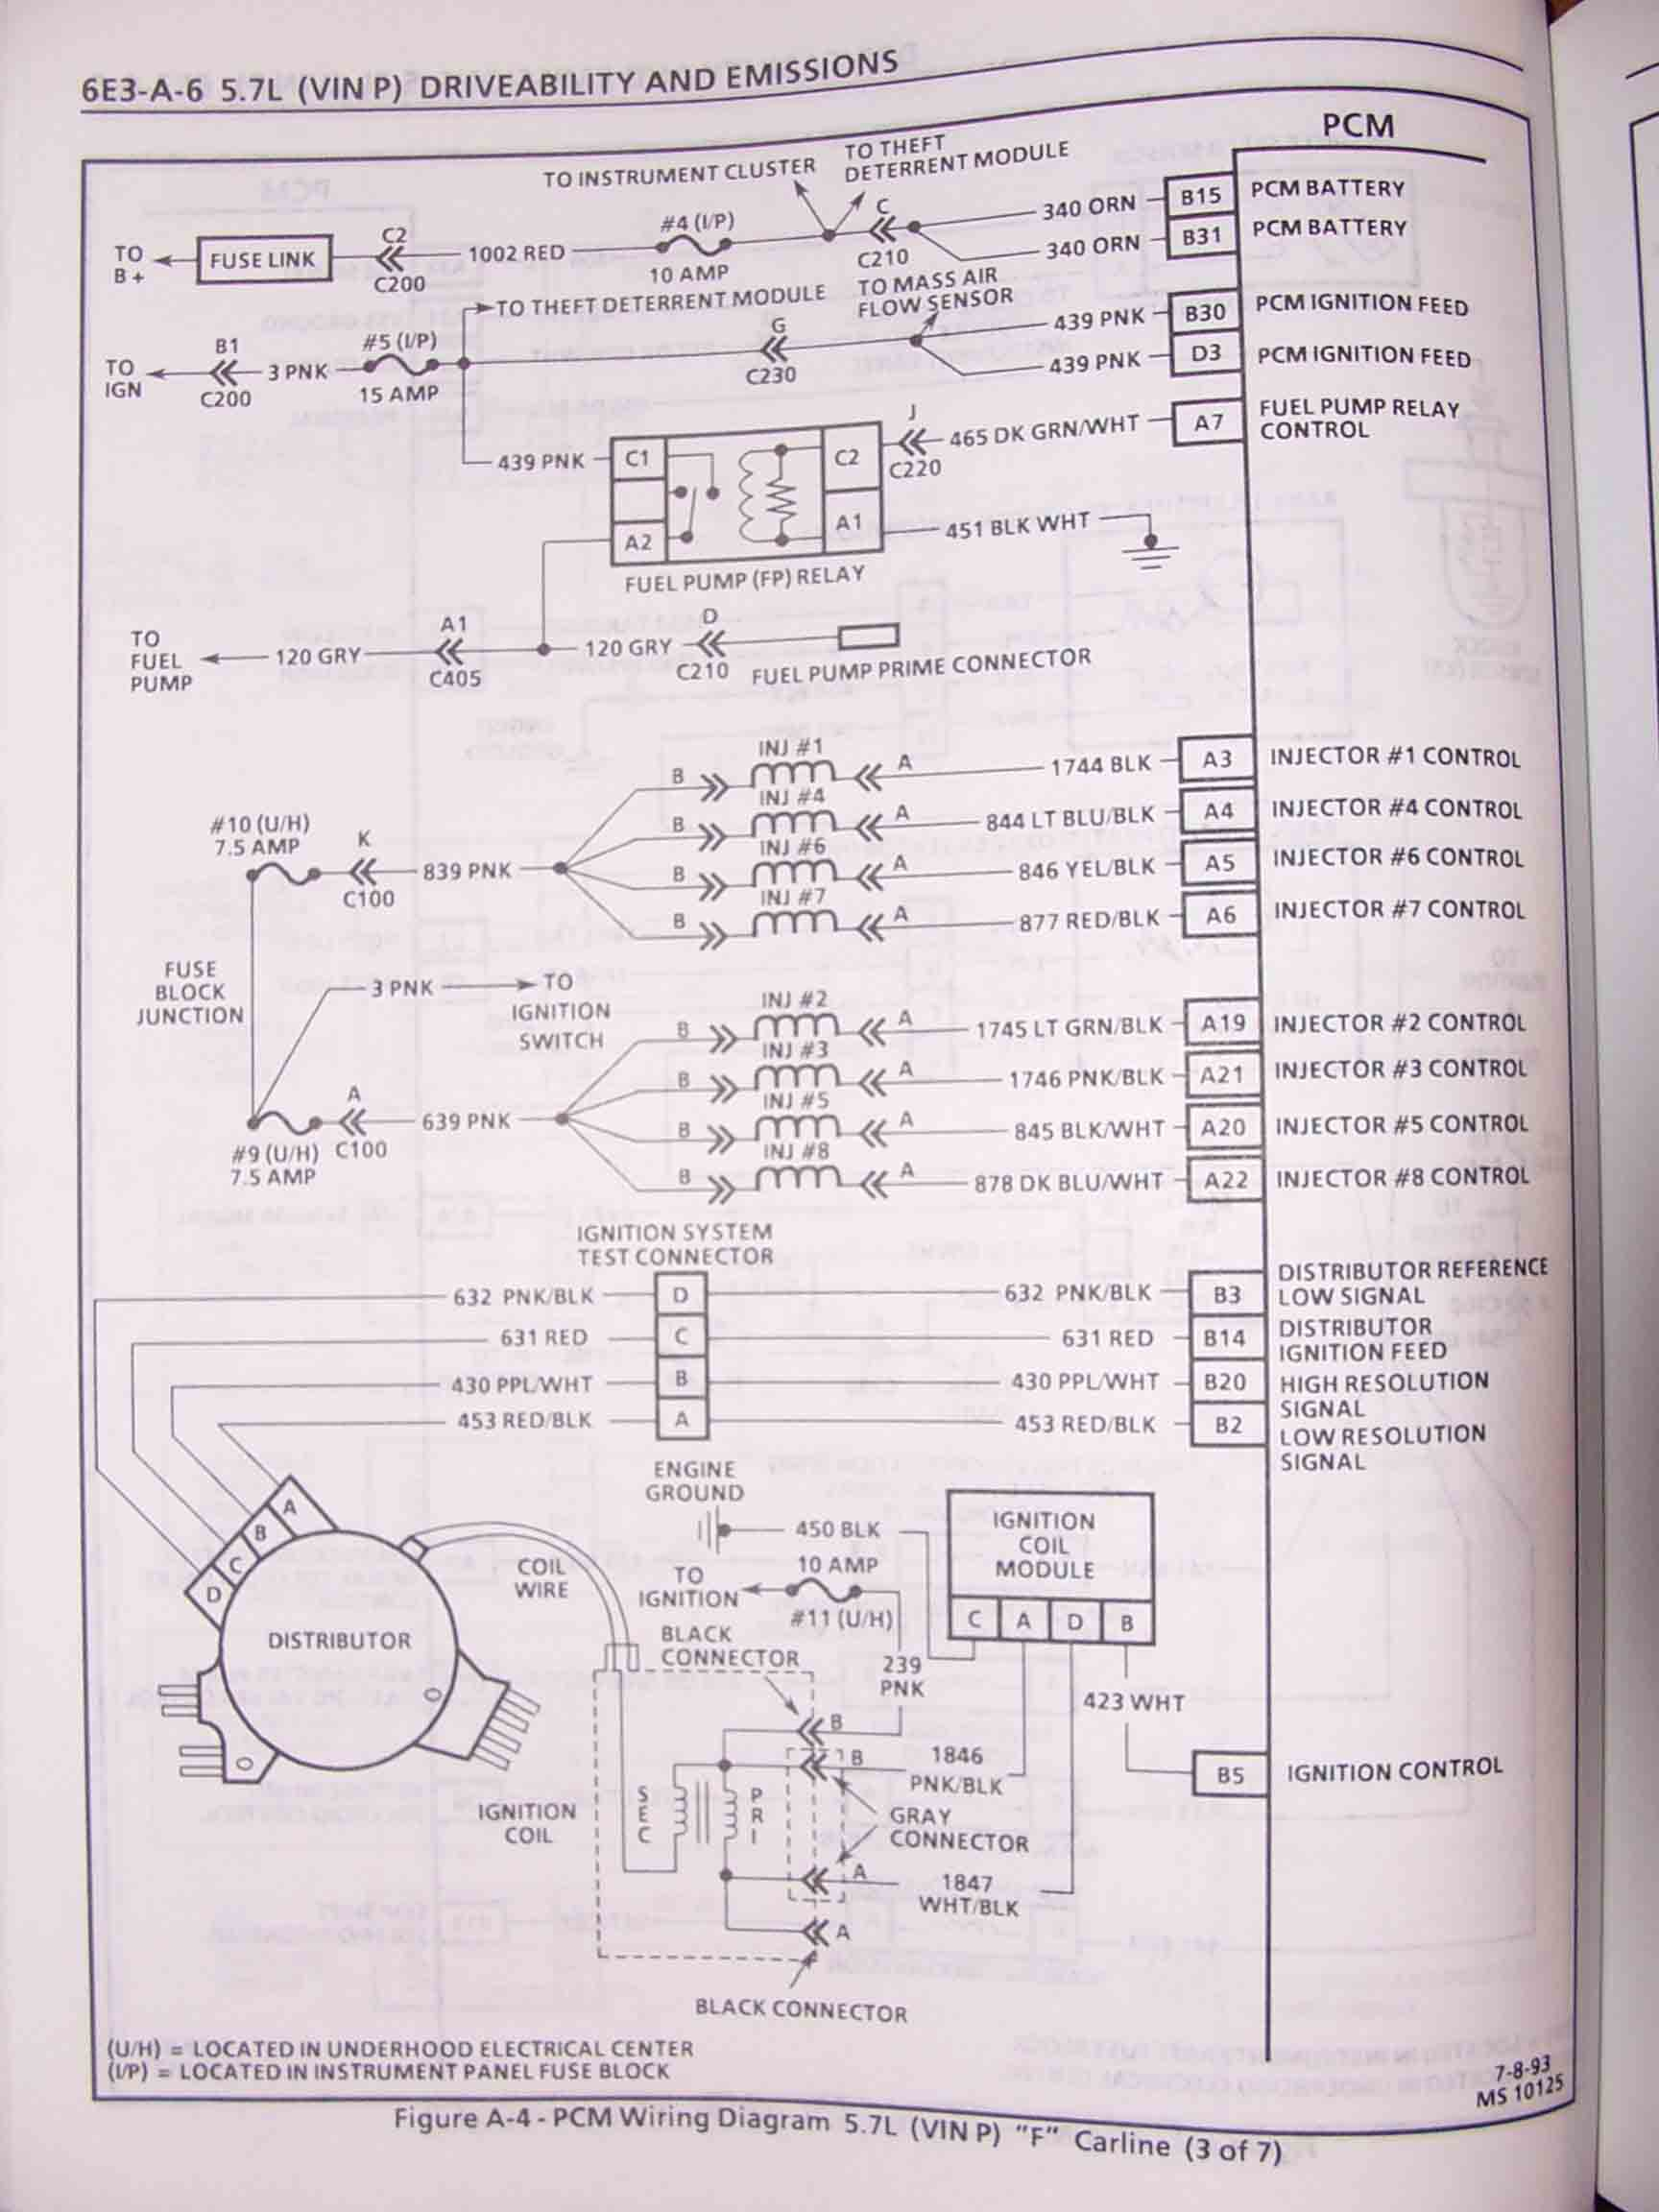 94 Camaro Speedometer Wiring Diagram Fuse Box 1993 1995 F Body Wire Harness Schematics Rh Lt1swap Com 1996 Lt1